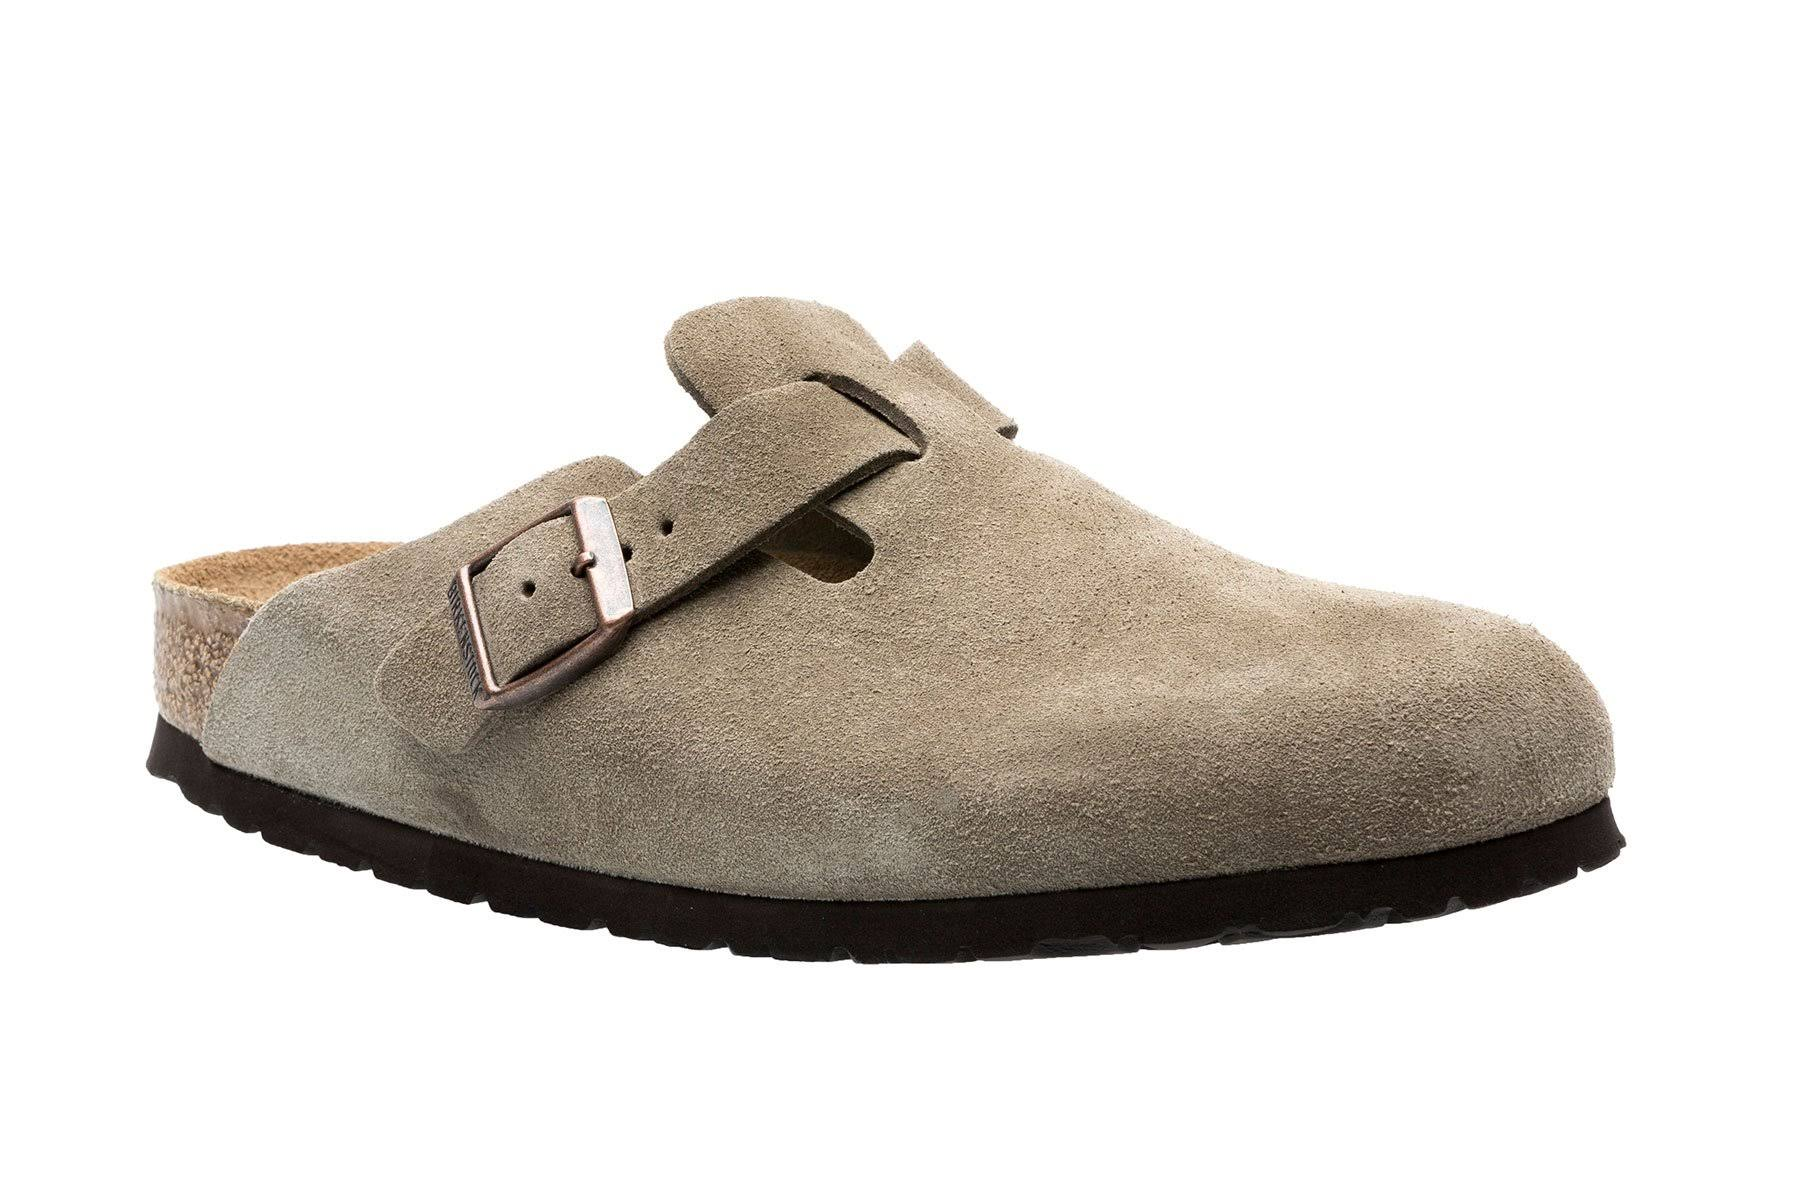 Birkenstock Taupe Suede Boston Soft Footbed Clogs